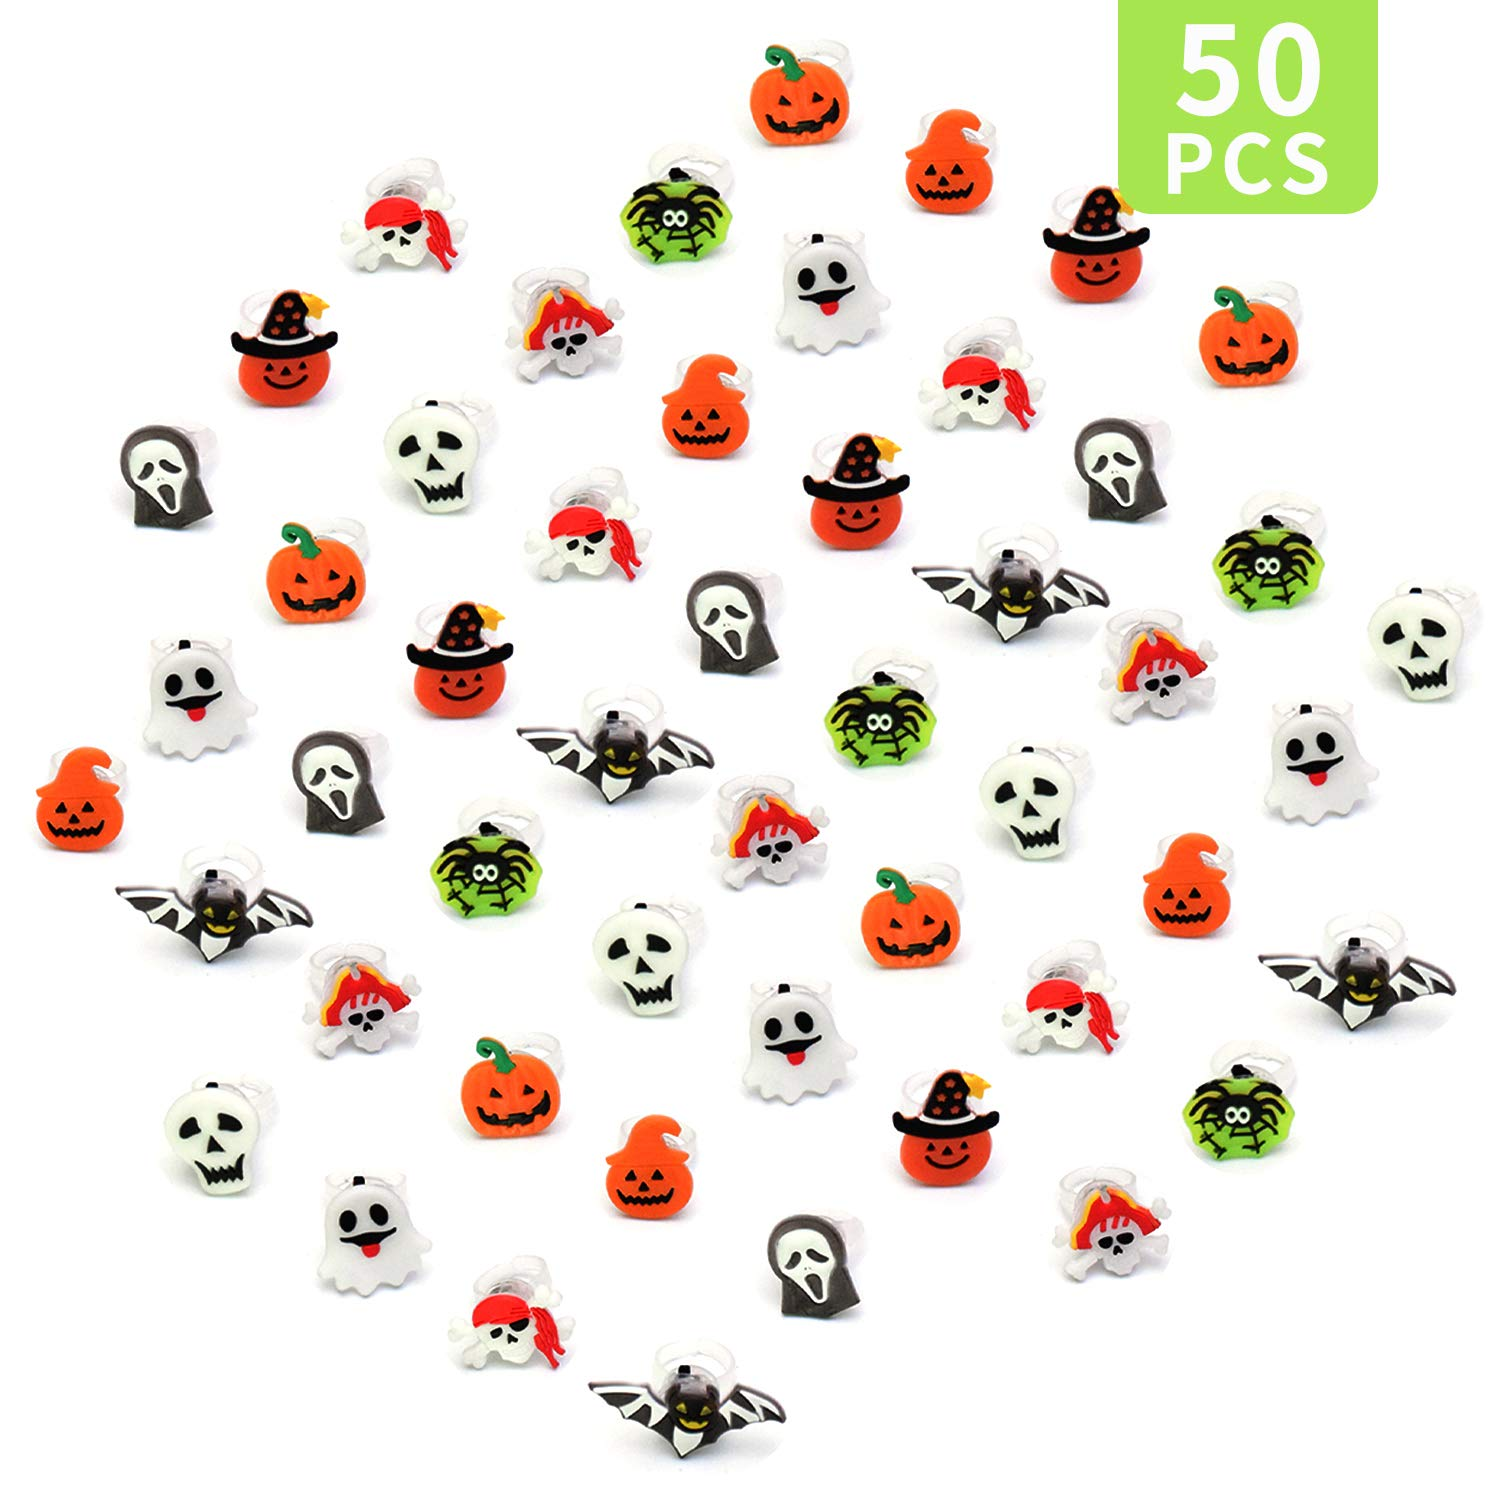 Senhui Halloween LED Ring,50pcs Rubber Ghost Pumpkin Skeleton LED Light Up Ring for Kids in The Dark Rave Birthday Party (Rings) by Senhui